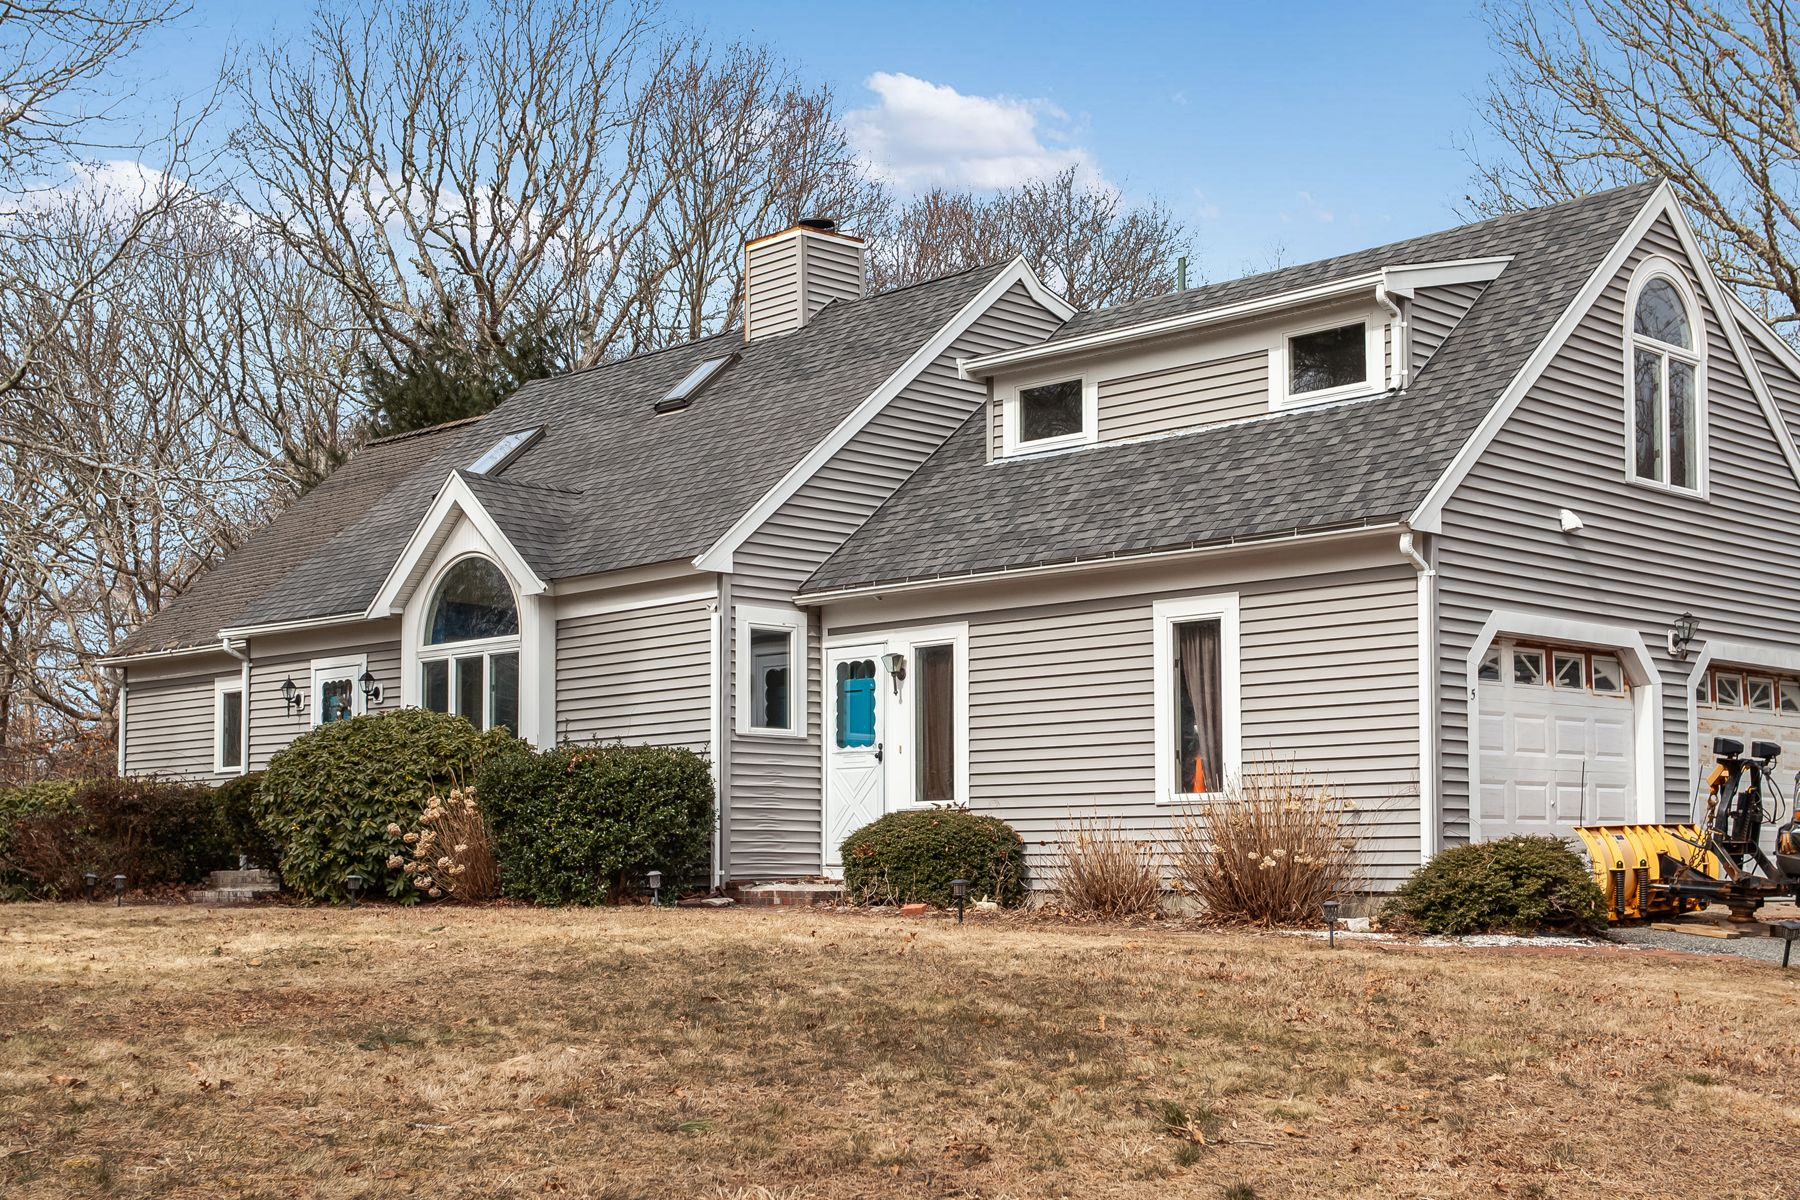 Single Family Home for Active at 5 Maritime Way Bourne, Massachusetts 02532 United States